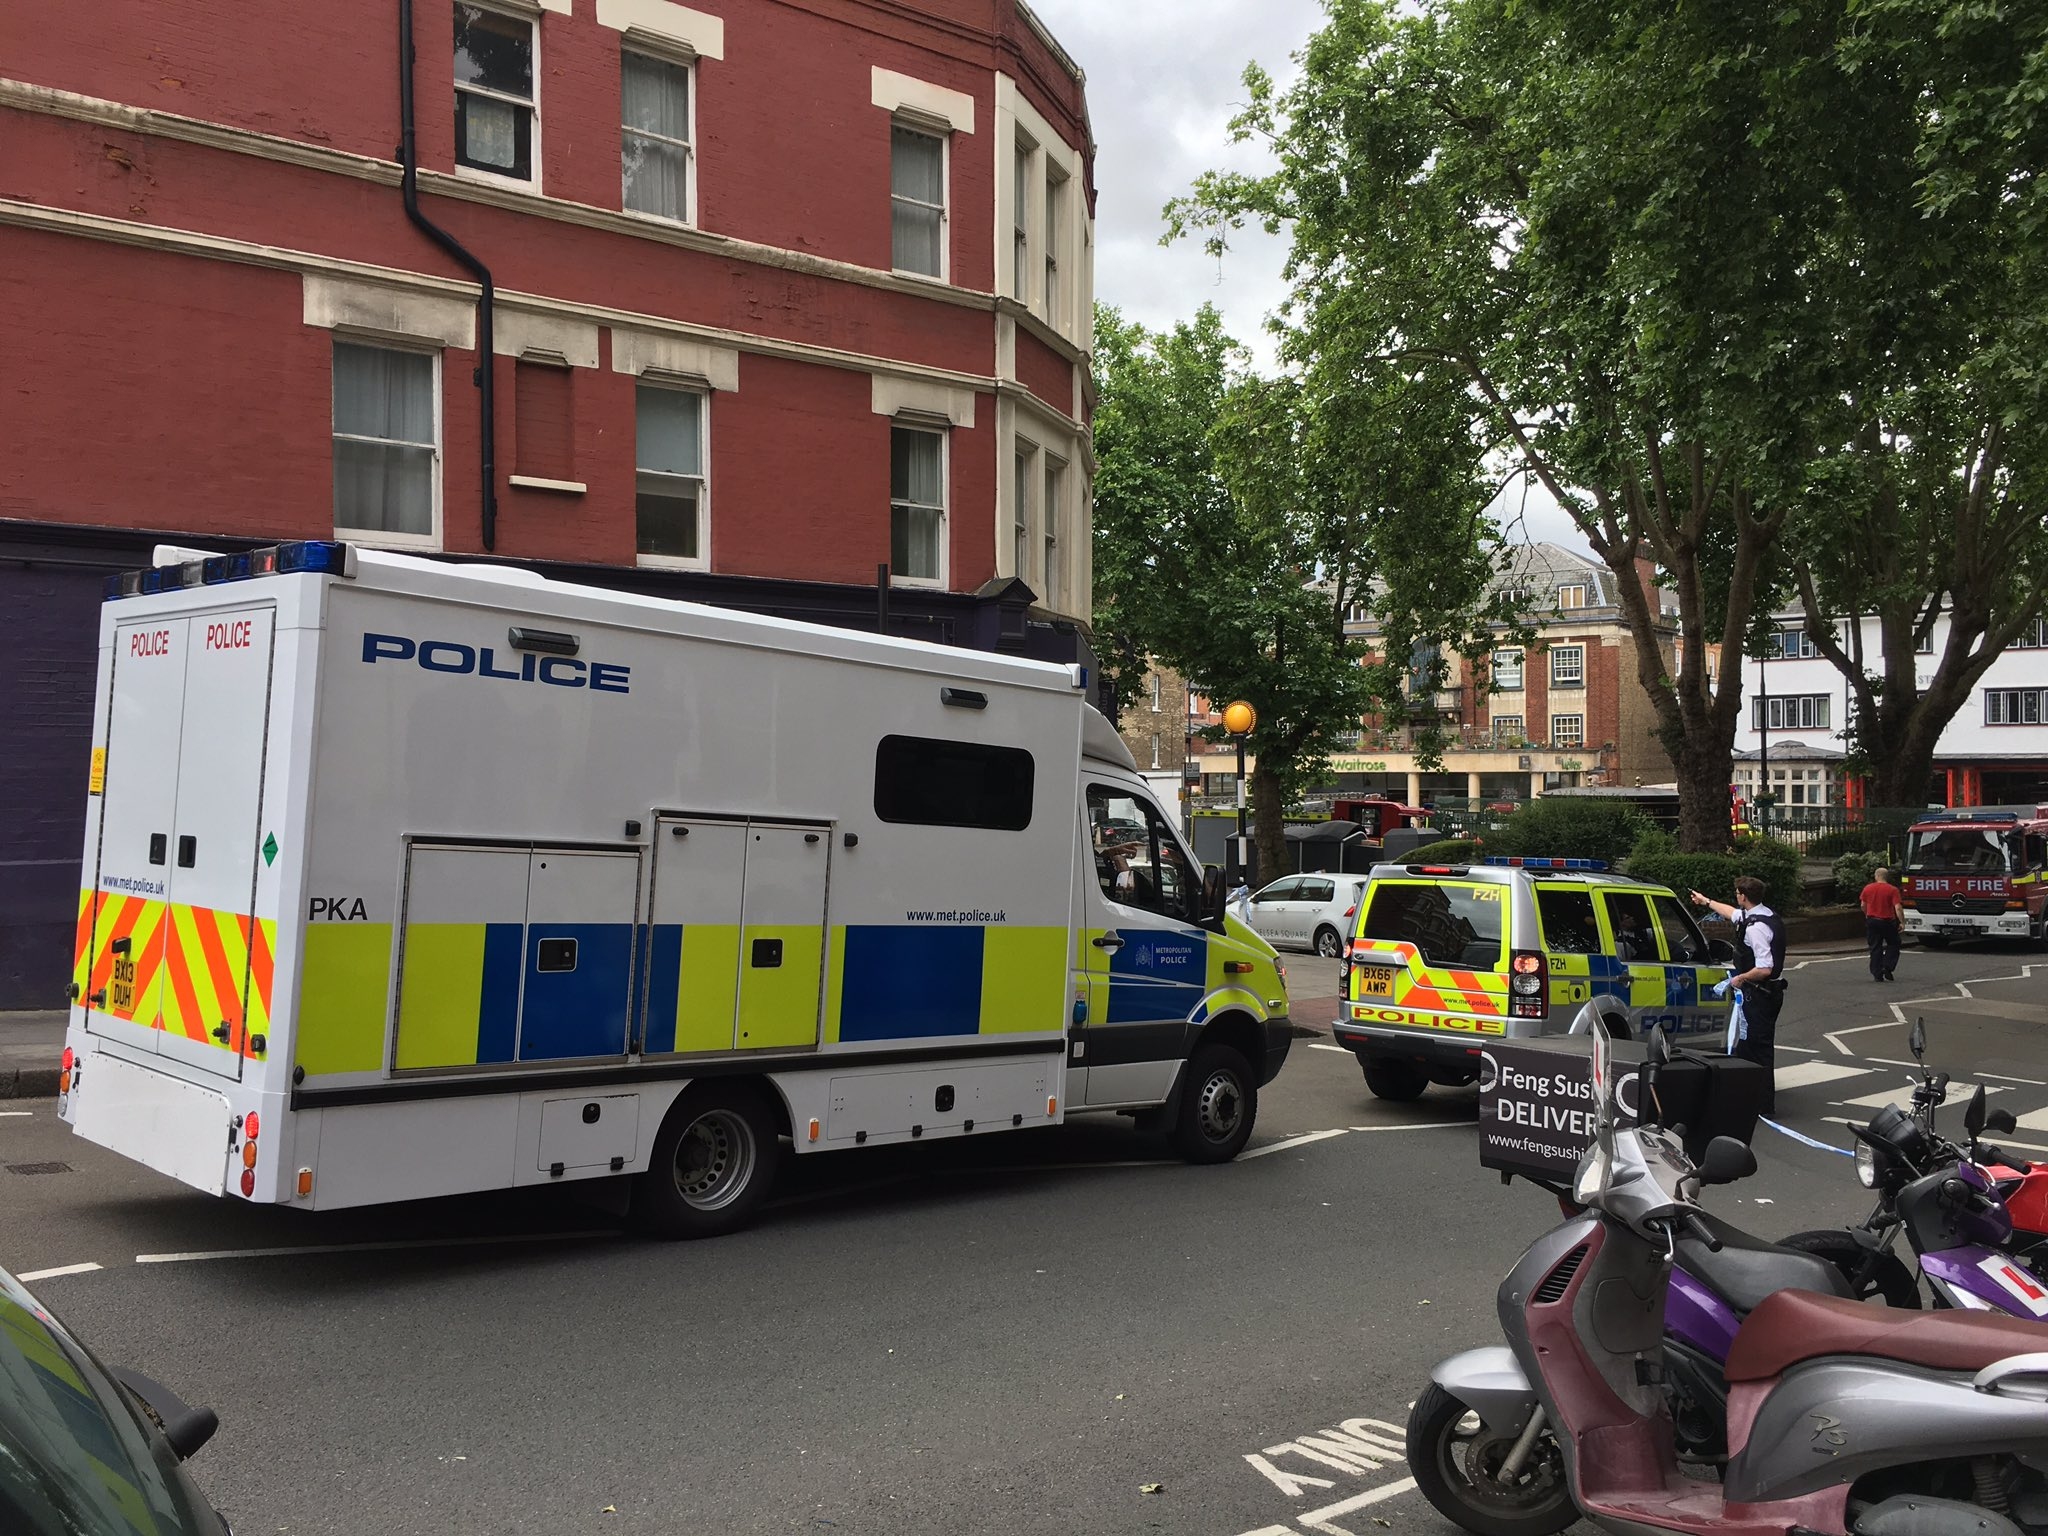 Arrival of more police, West End Lane closed off. Worried residents not able to return home. @WHampstead @WELBooks https://t.co/YMx8z61Qkw